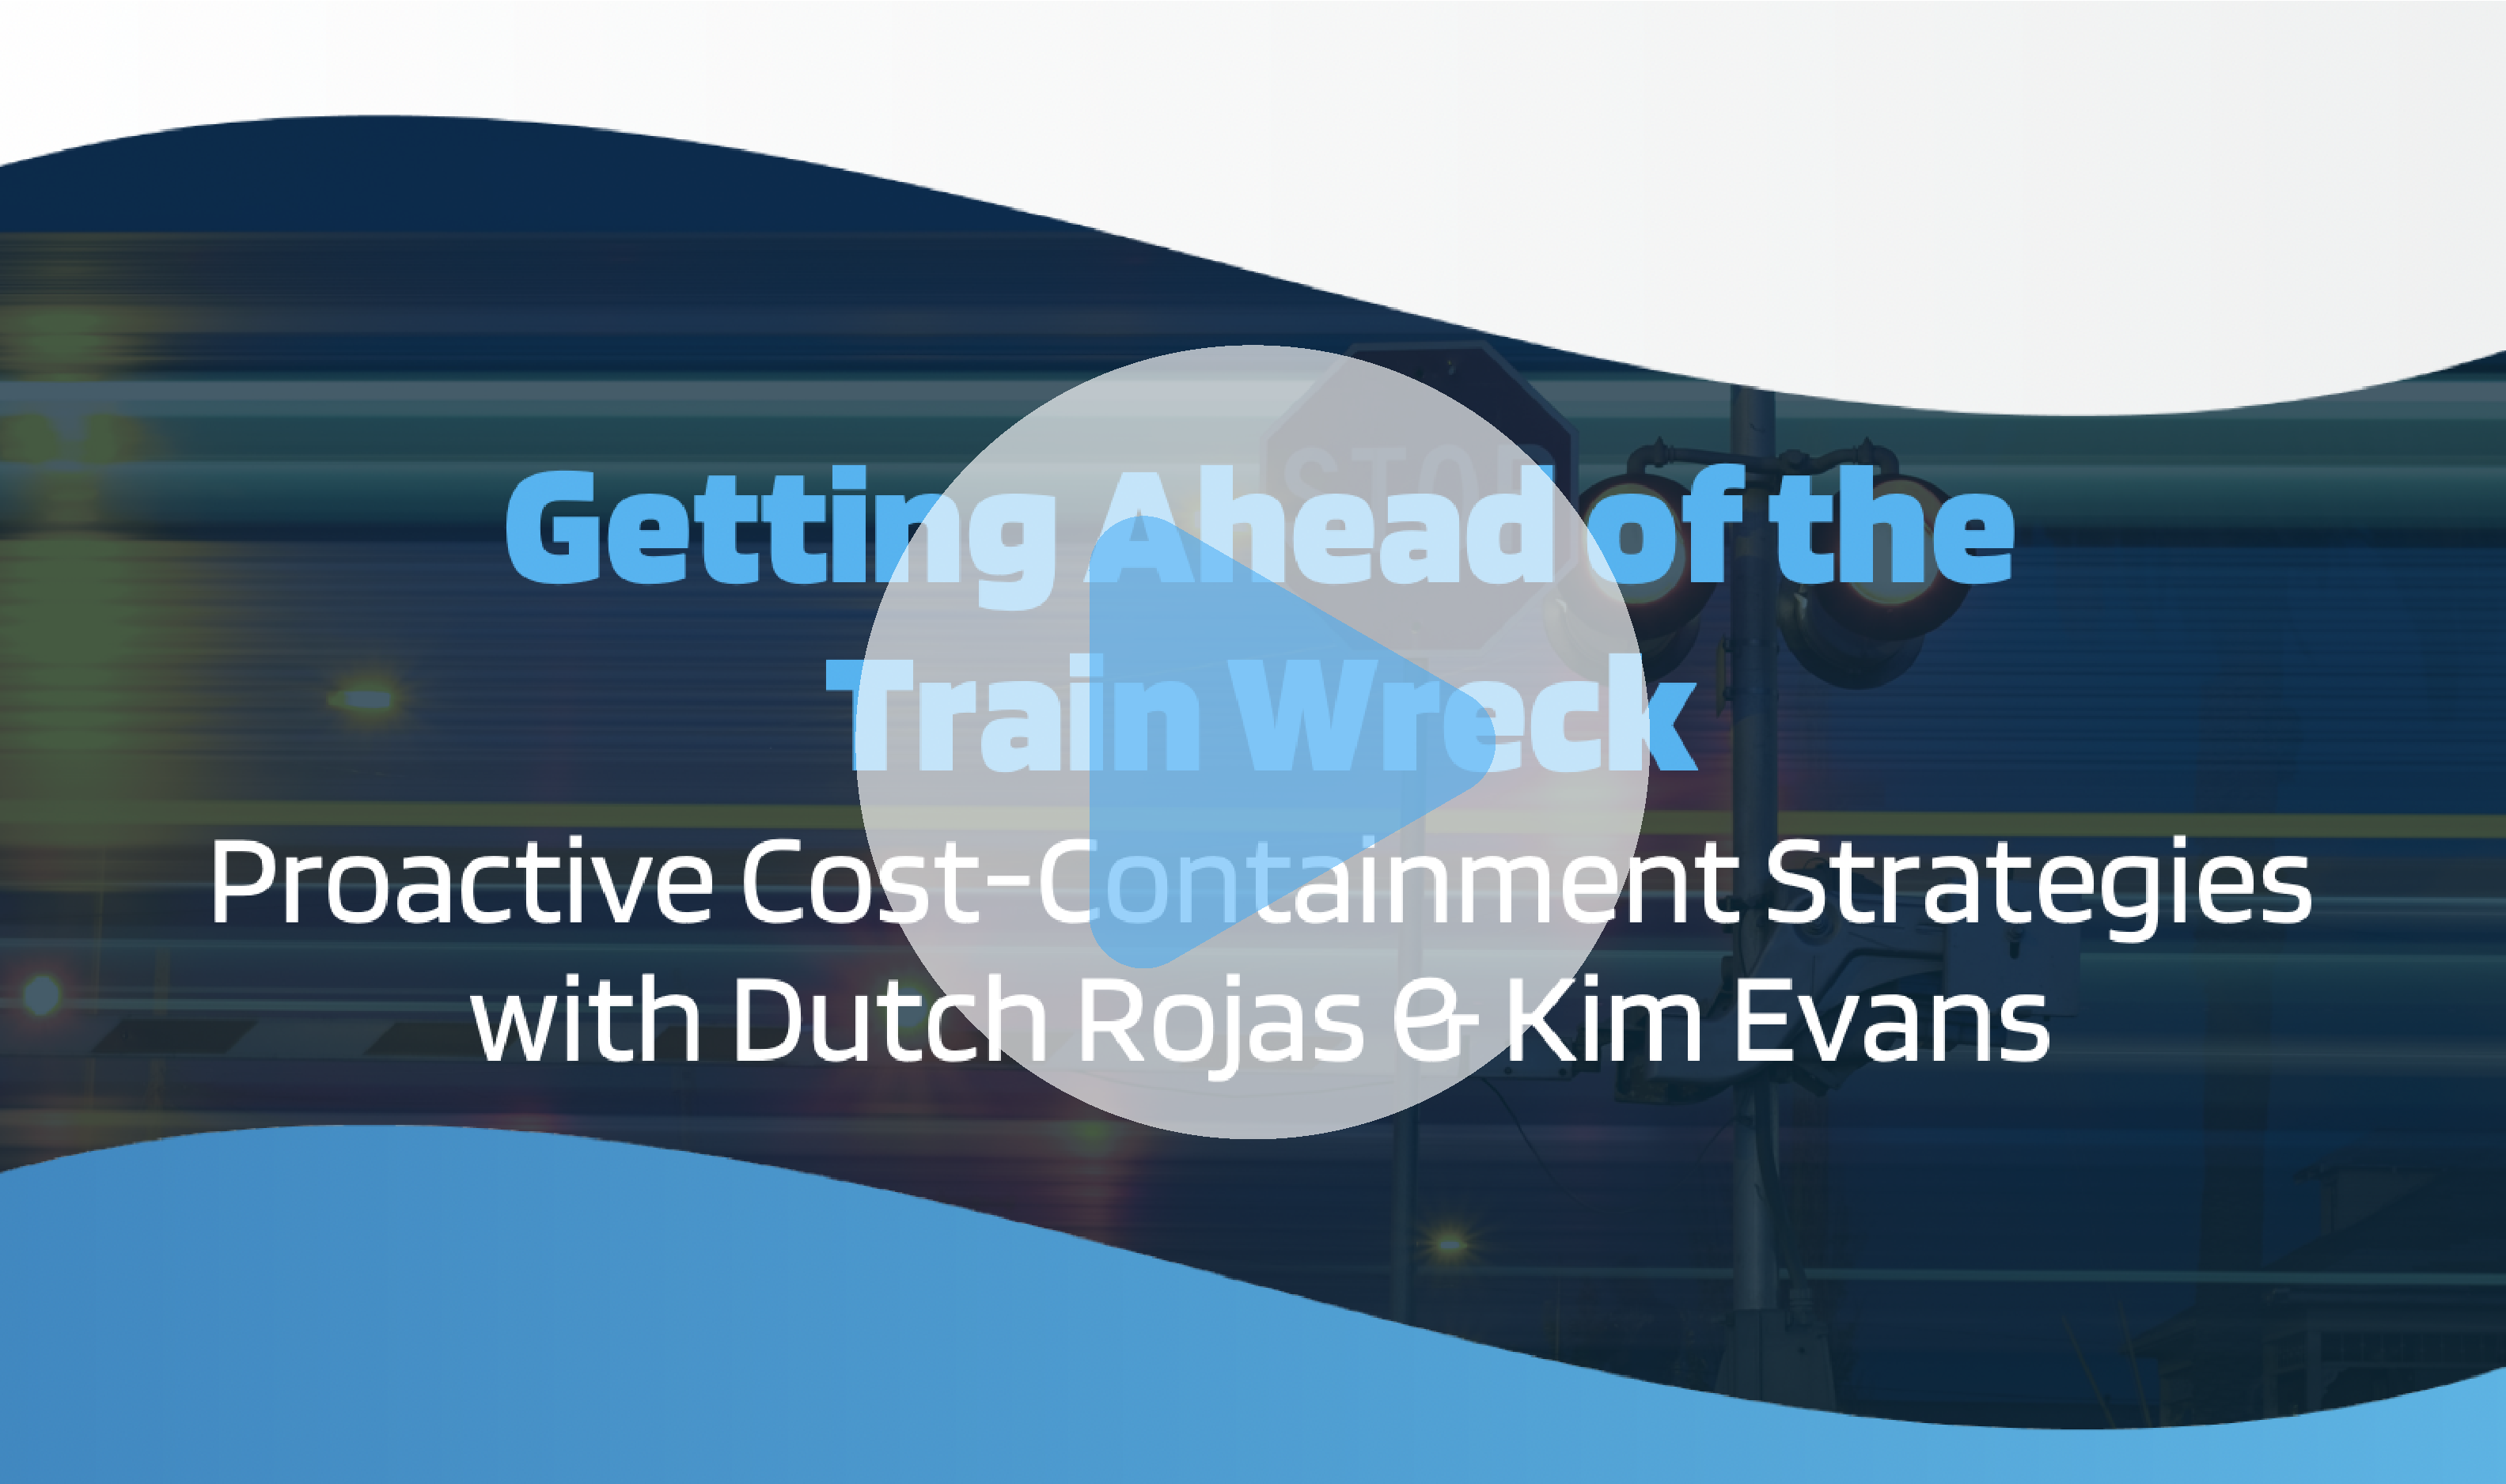 Getting Ahead of the Train Wreck - Proactive Cost-Containment Strategies with Dutch Rojas & Kim Evans